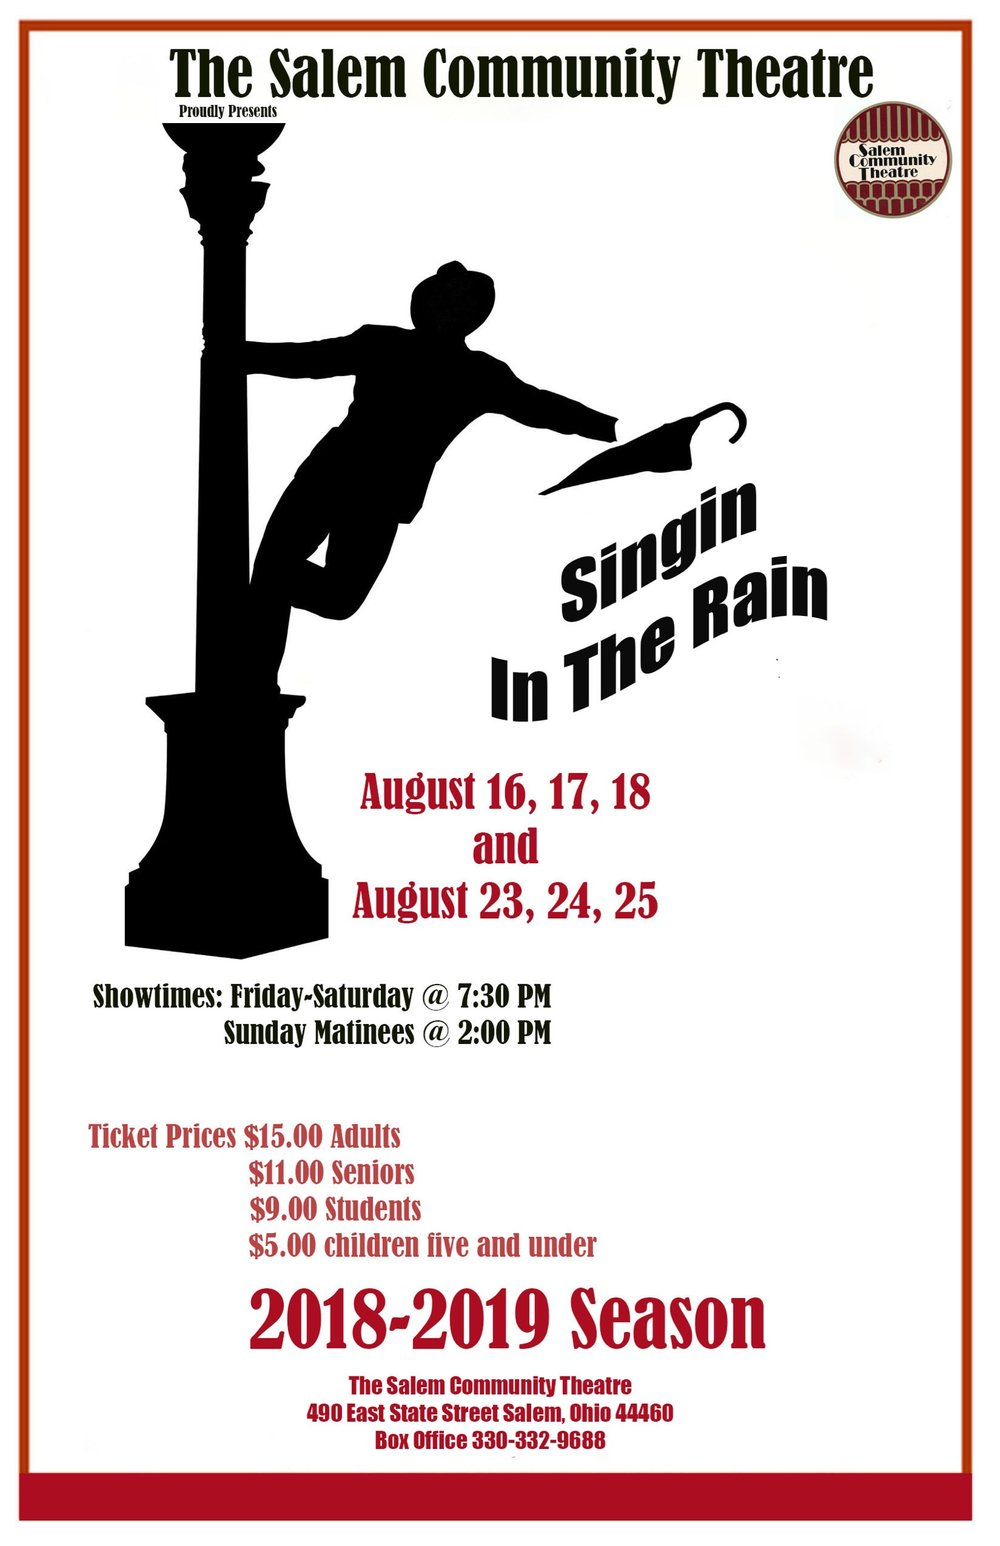 Auditions - Singin' In The RainAuditions for Singin' in The Rain directed by Justin Steele will be held Monday June 3rd and Tuesday June 4th at 6 pm. Auditioners must come prepared with a 32 bar section of a song in the style of the show, songs from the show are allowed as well. There will be no accompanist provided those interested in auditioning must provide a cd with our voices, a cell phone without voices, or sing acapella. There will be a short dance call so please dress appropriately. Show dates are August 16th and closes August 25th. Casting from ages 12 and up. During tech week every cast member is required to be there these are MANDATORY rehearsals beginning August 11th until opening night. If you have any questions about auditions please contact us at 330-332-9688 or by email or on Facebook!